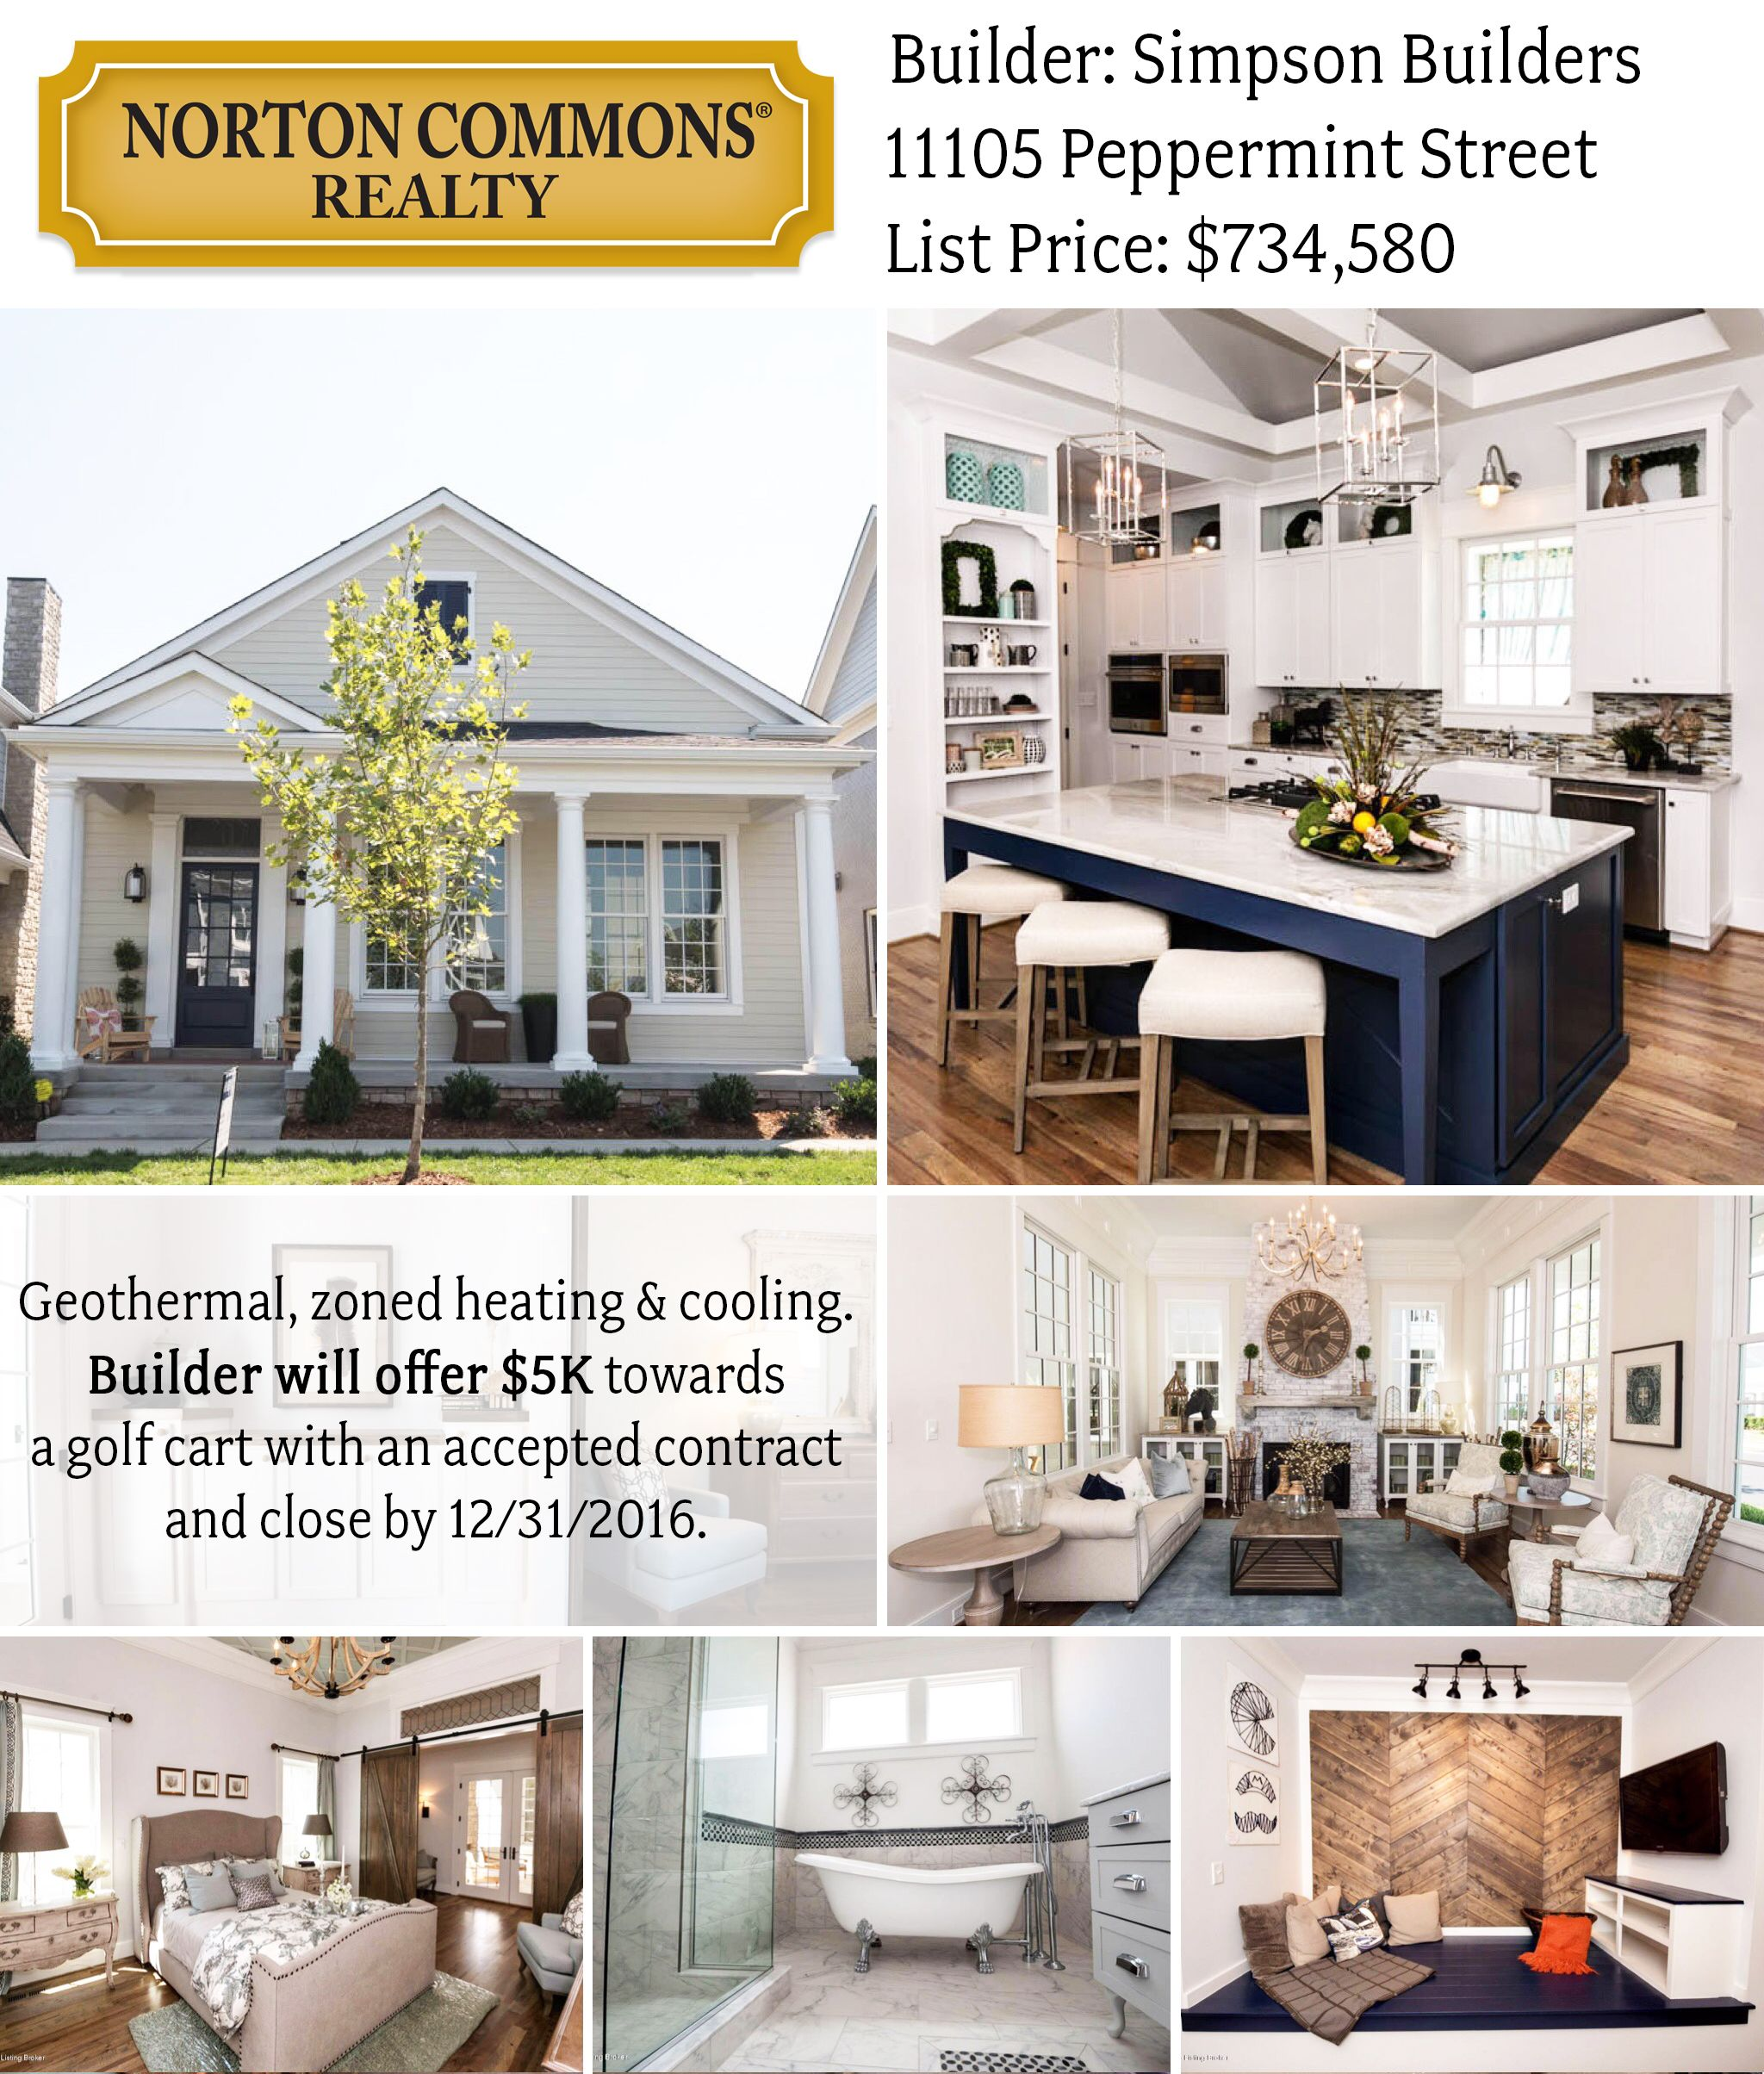 This Beautiful Homearama Home Is For Sale And Built By Simpson